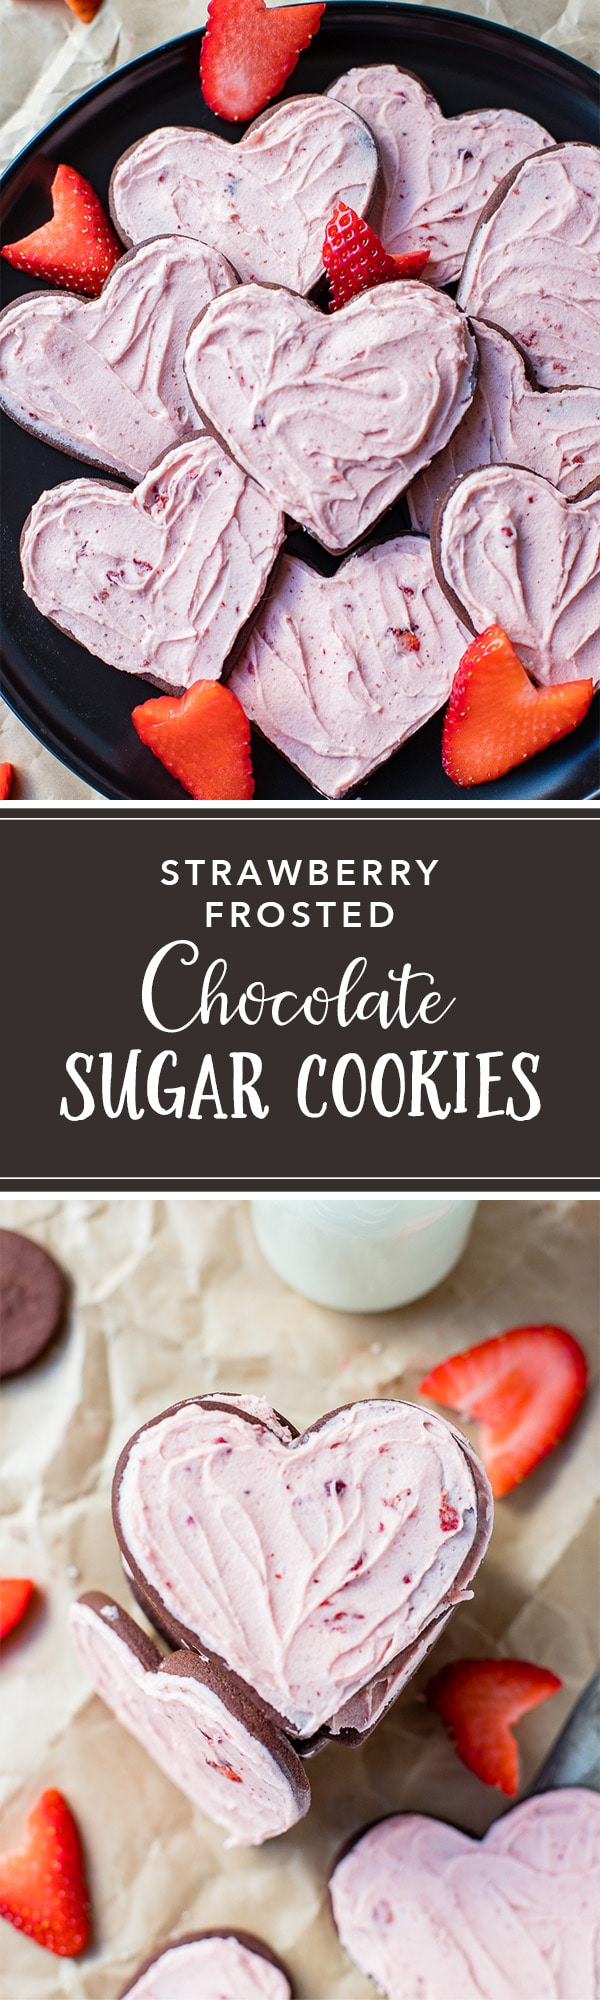 The best cut-out chocolate sugar cookies are easy to make, so fun for any occasion, and easy to decorate any way you choose. They're especially sweet with this delicious strawberry frosting! #sugarcookies #chocolatecookies #cutoutcookies #strawberry #strawberryfrosting #freezedriedstrawberries